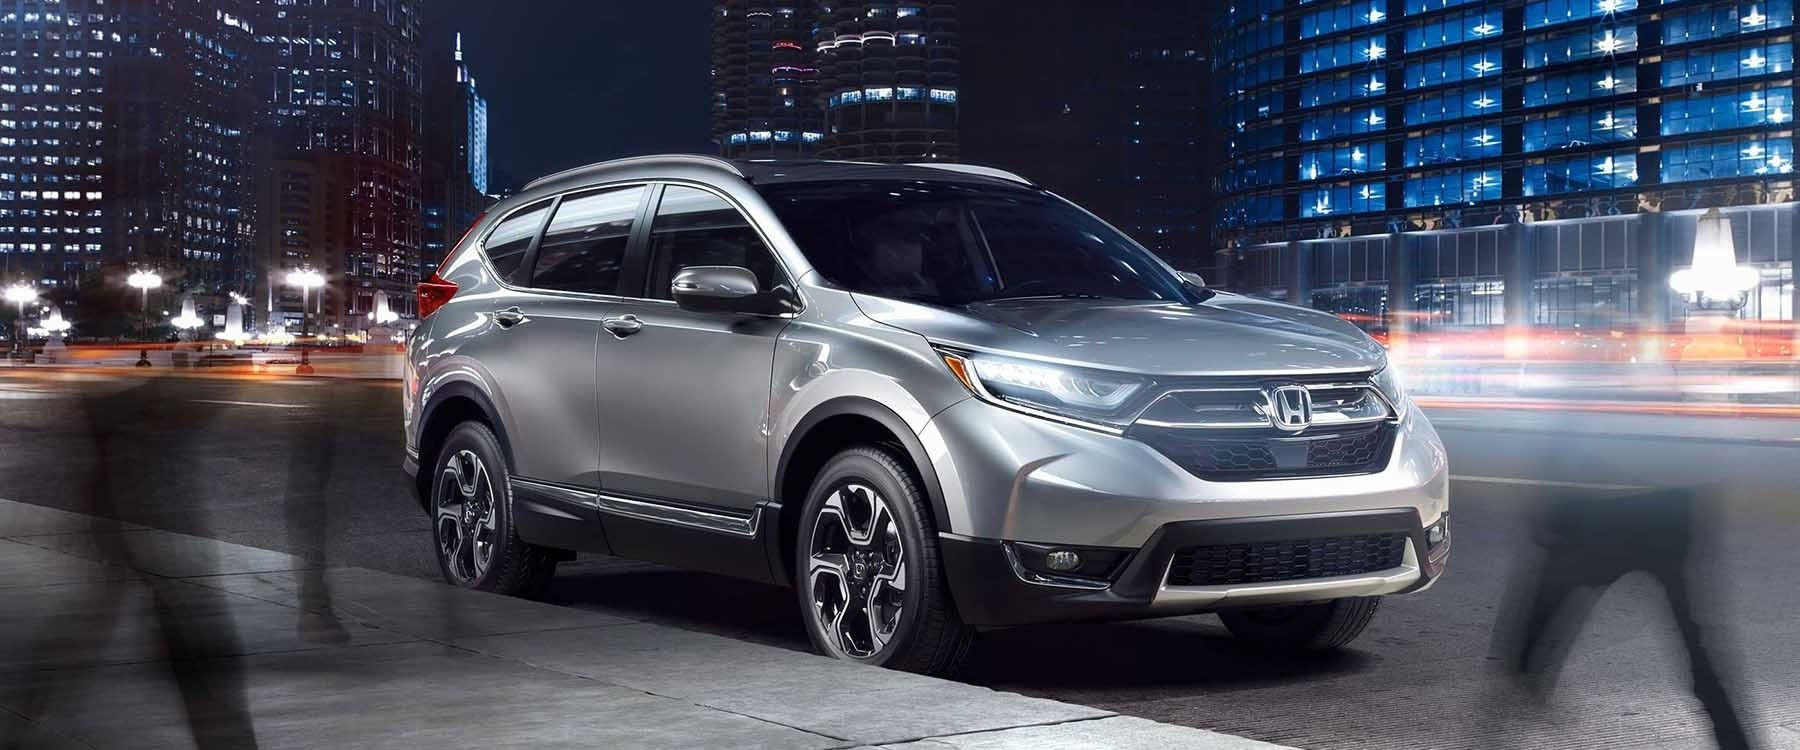 2017 Honda CR-V Technology Slider